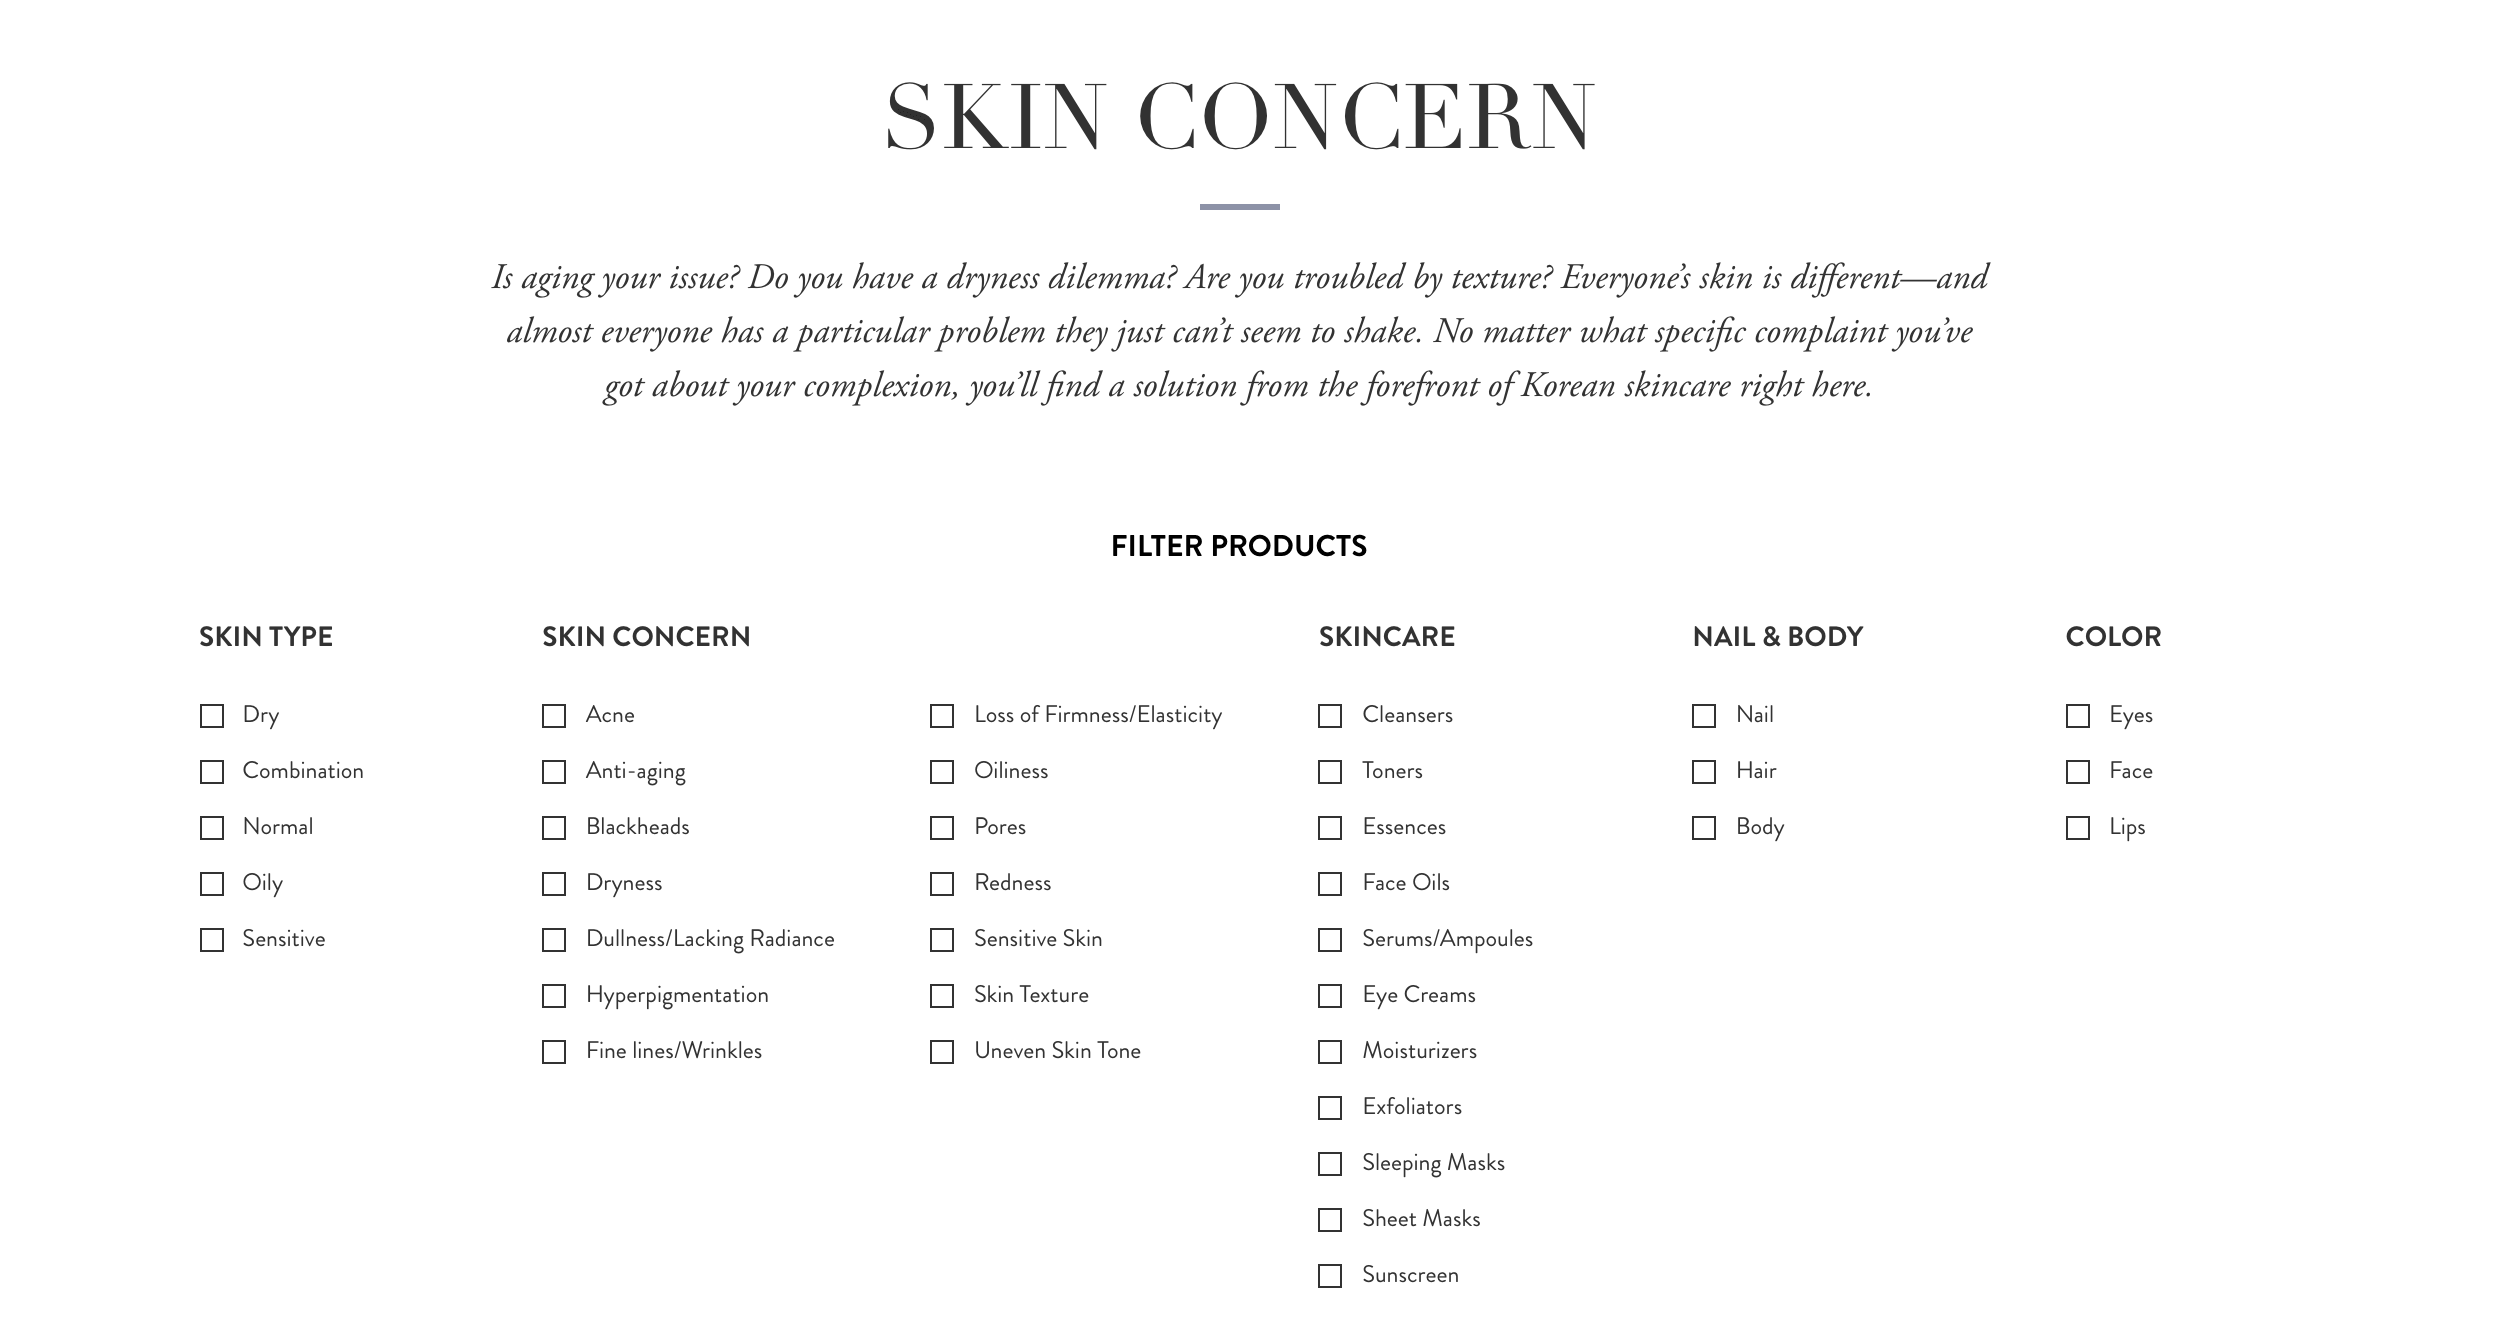 The K-beauty brand's products can be filtered by skin type, skin concern, and product type.